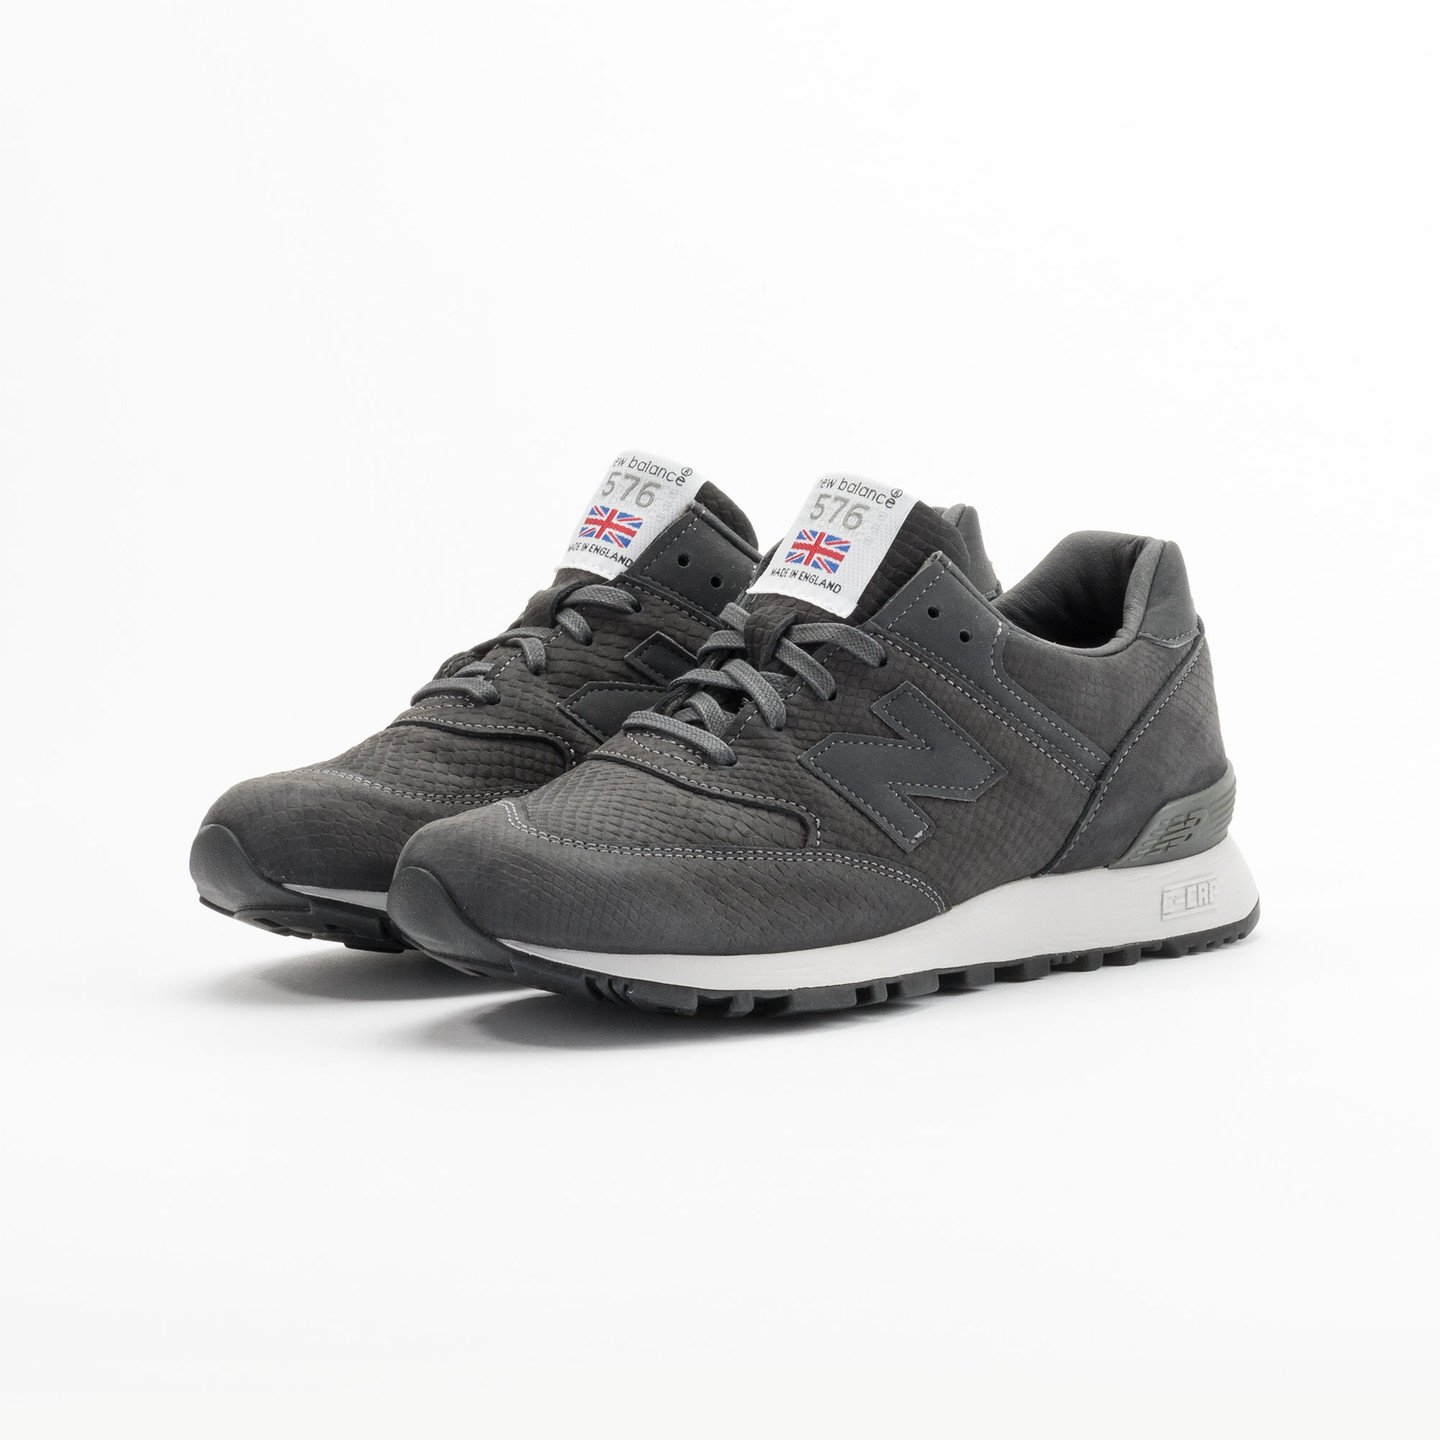 New Balance W576 NRG Made in England Dark Grey W576NRG-39